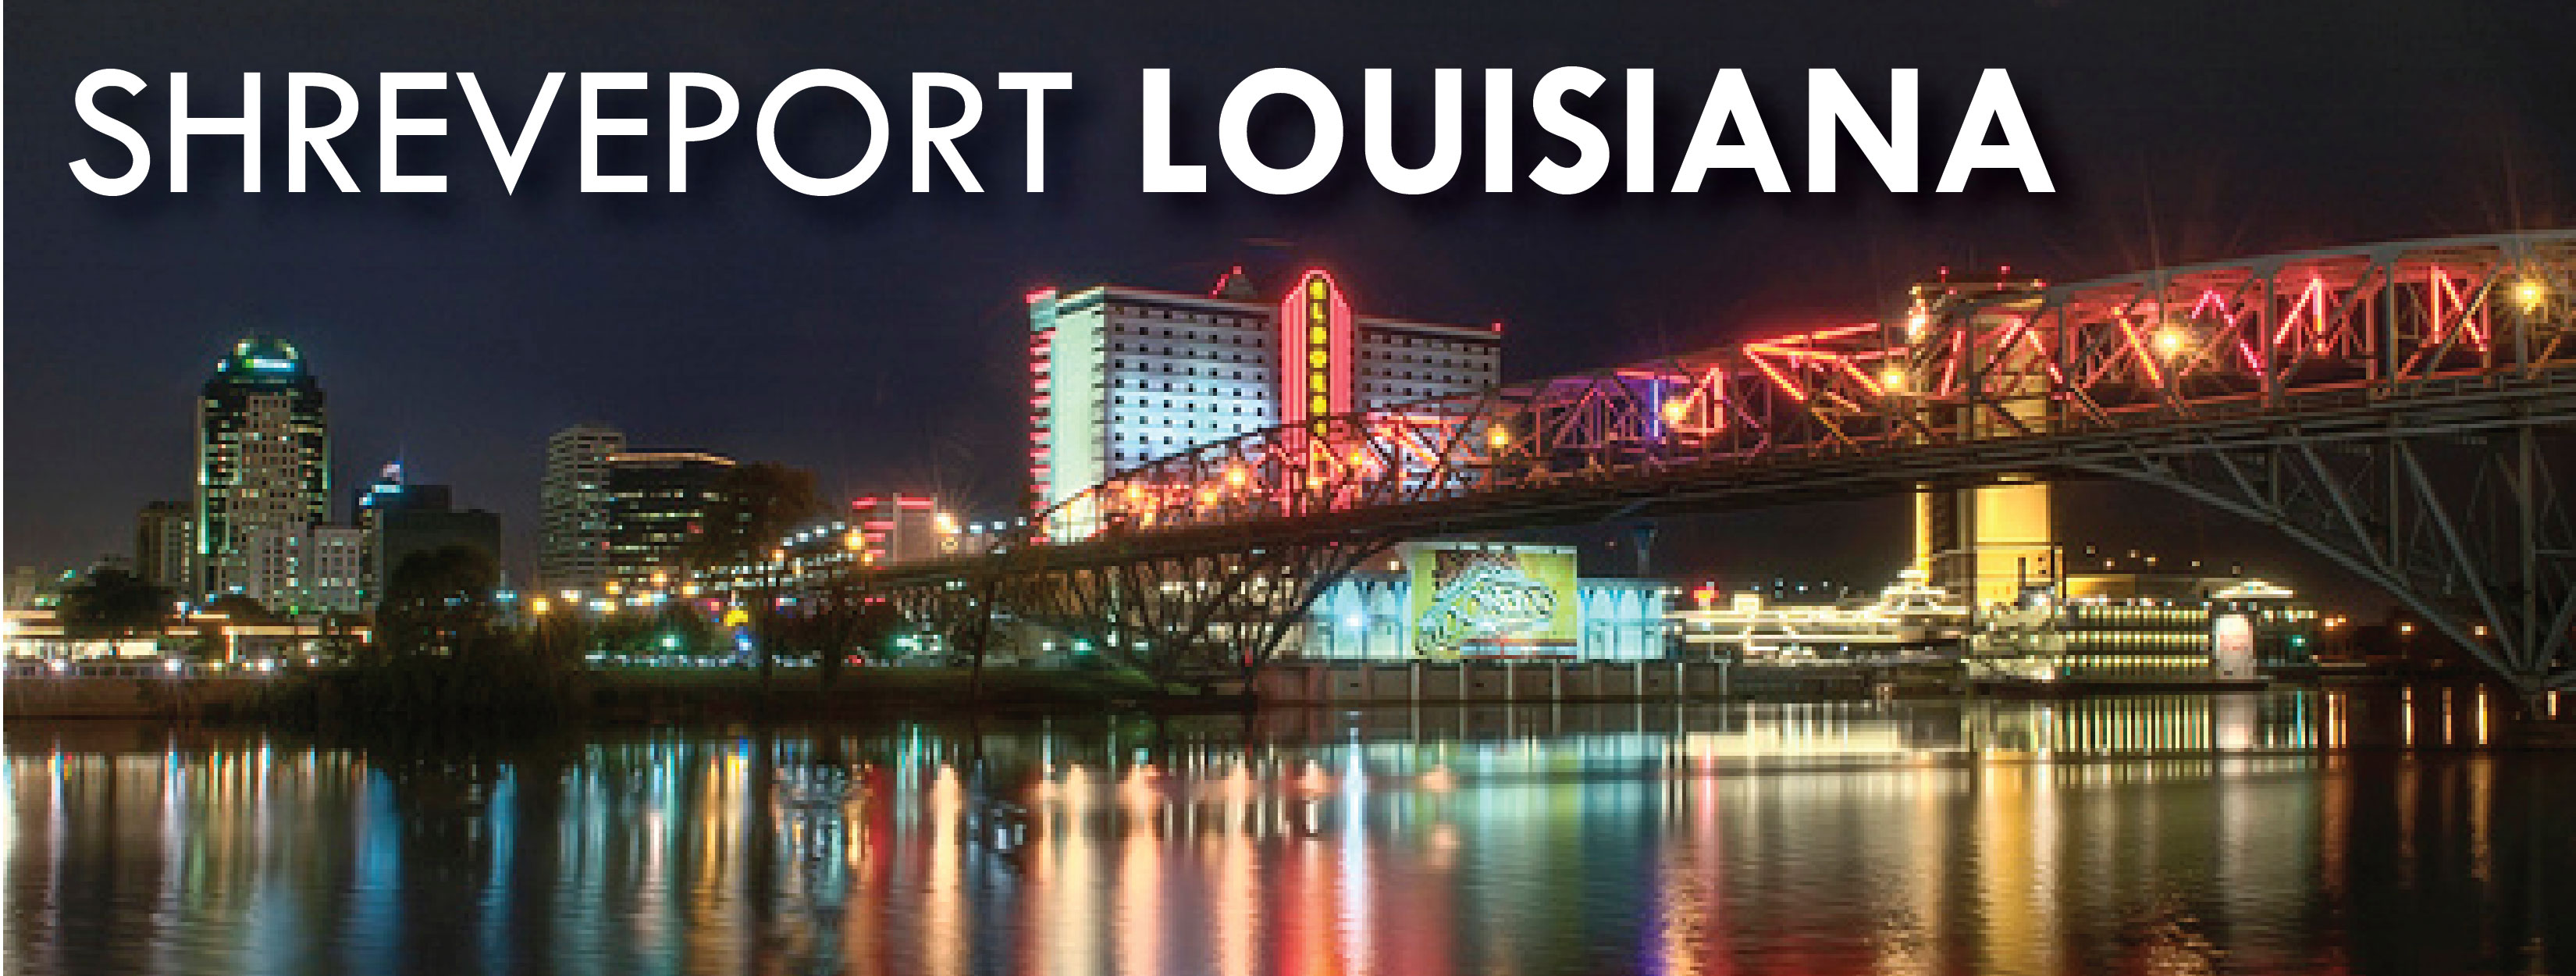 Shreveport 2016: Best of Shreveport, LA Tourism - TripAdvisor